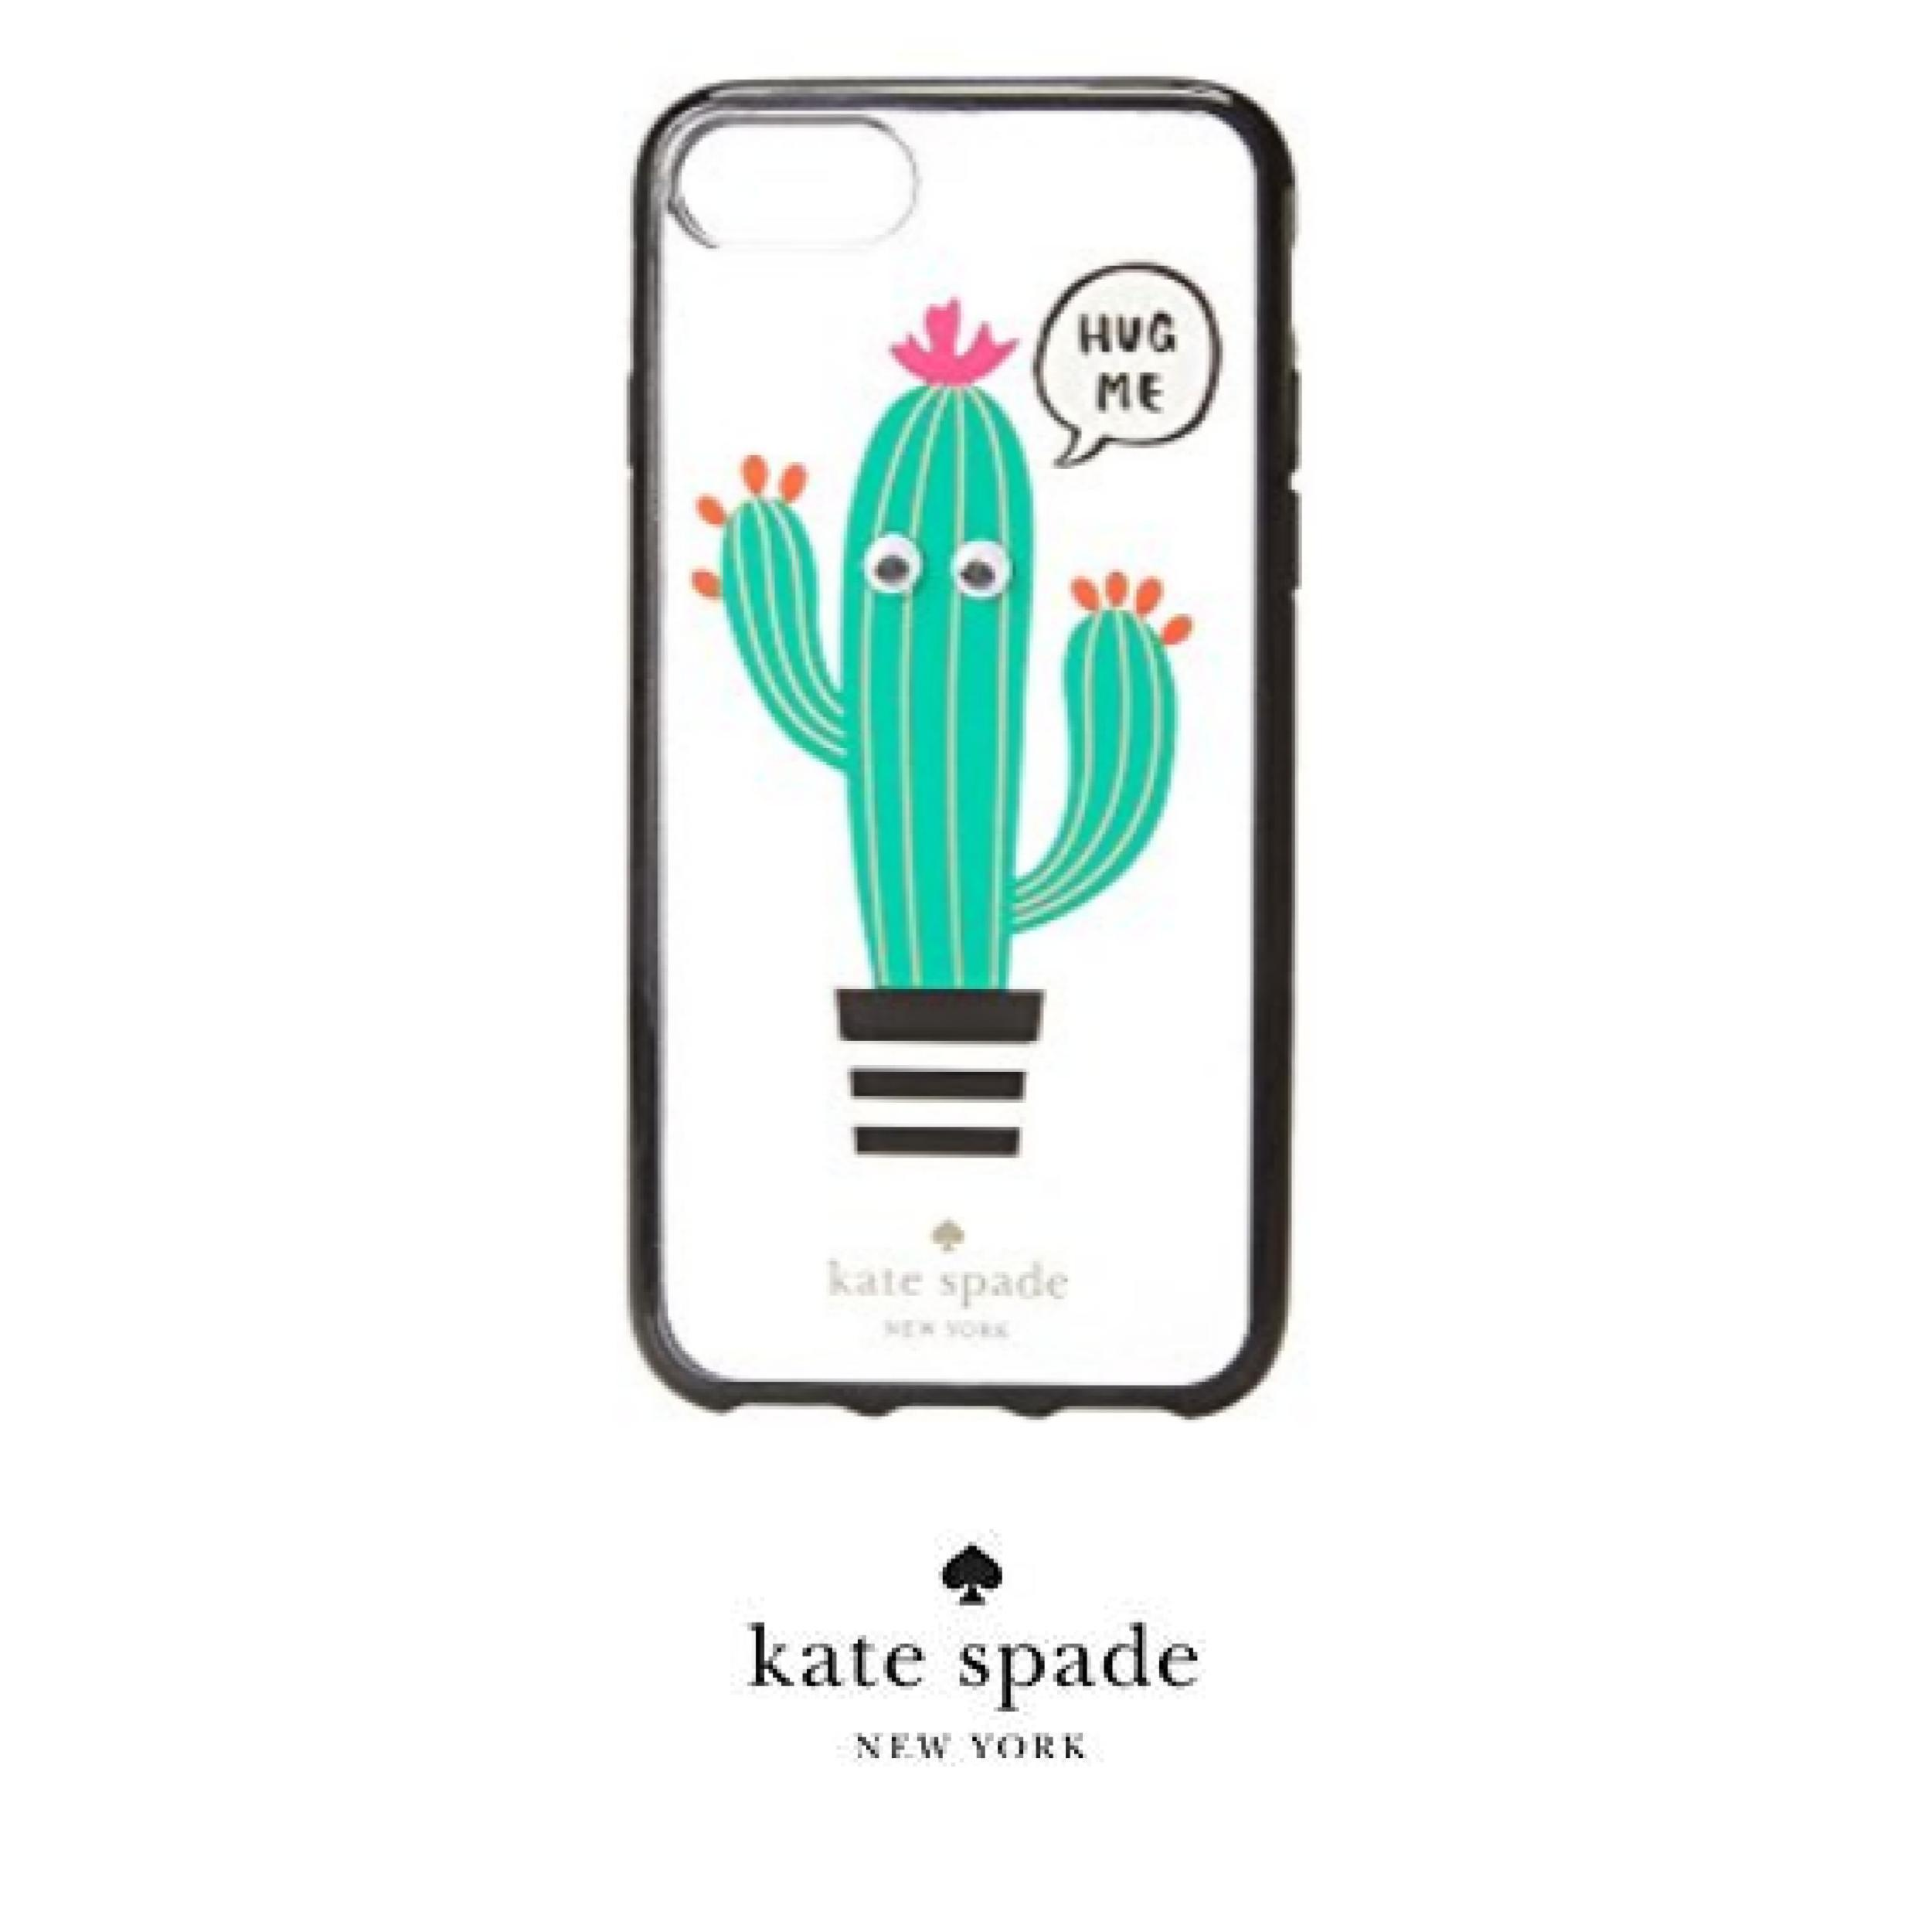 Kate Spade New York Hug Me Phone Case for iPhone7